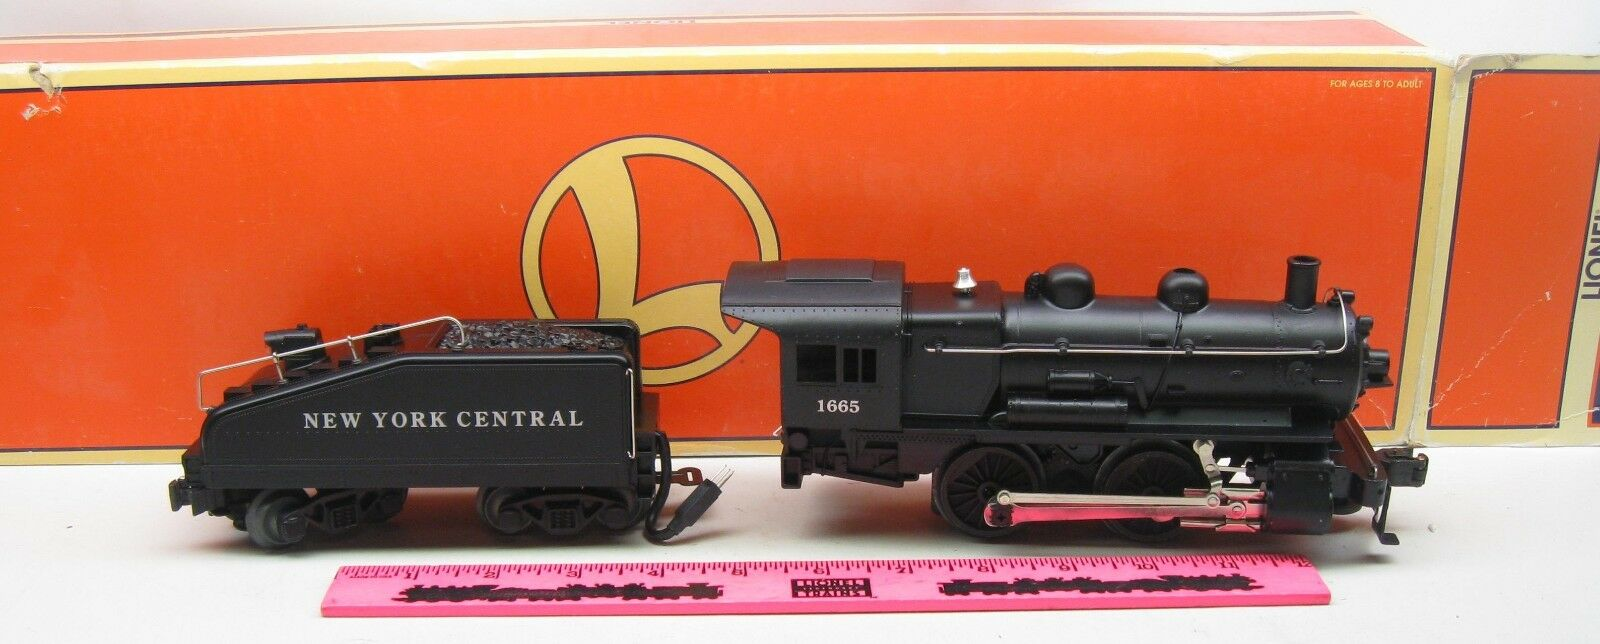 Lionel  6-18054 New York Central 1665 0-4-0 Steam Locomotive and Tender